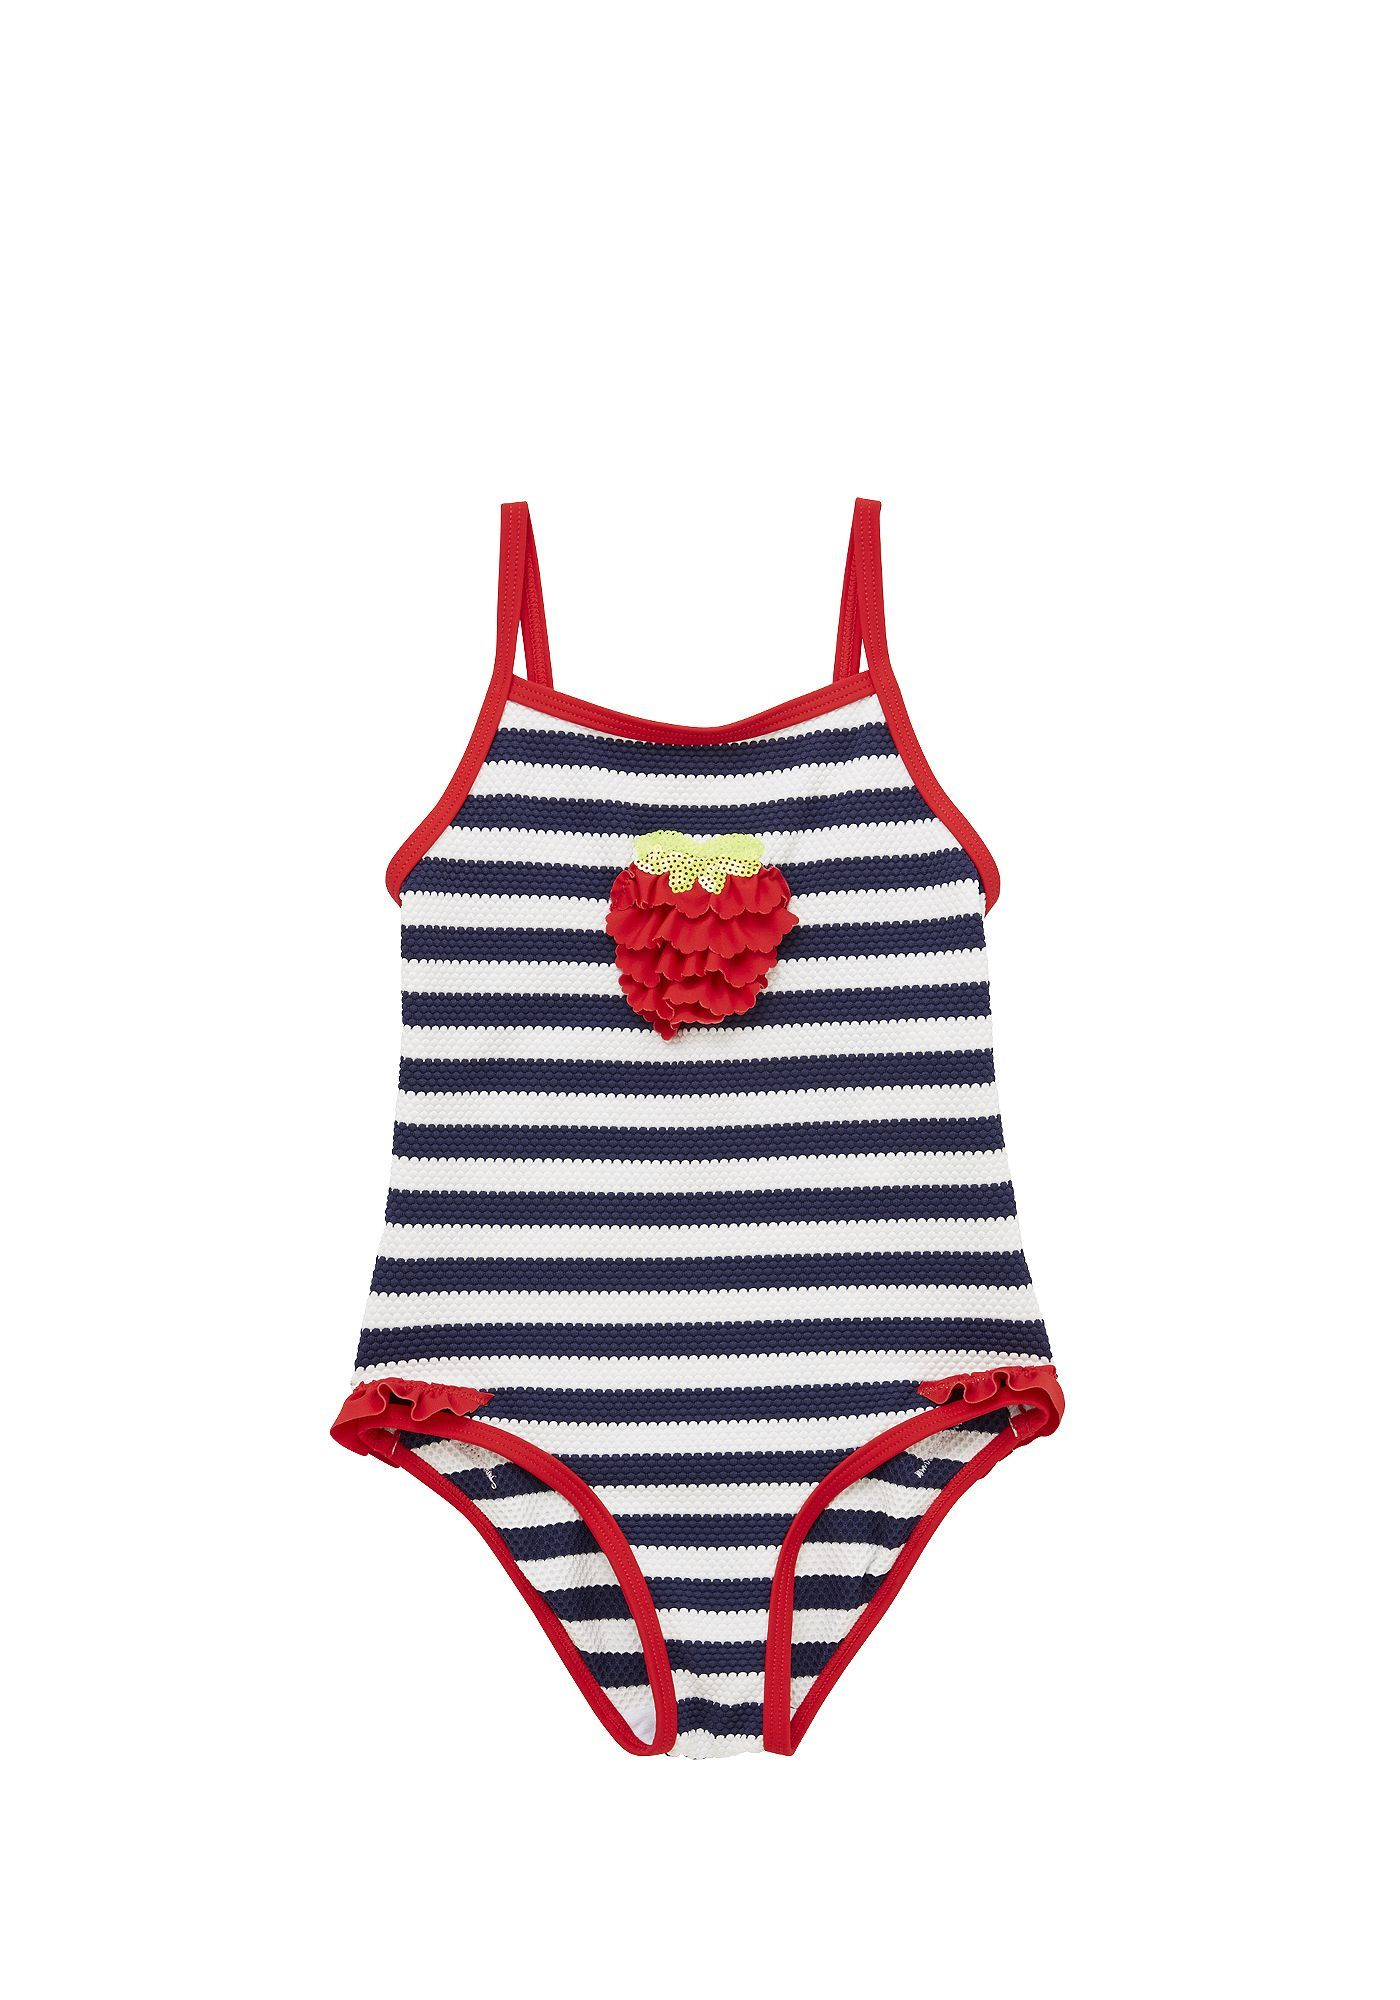 38b84cdd0c Tesco direct: F&F Textured Stripe Swimsuit | Swimwear | Fashion ...